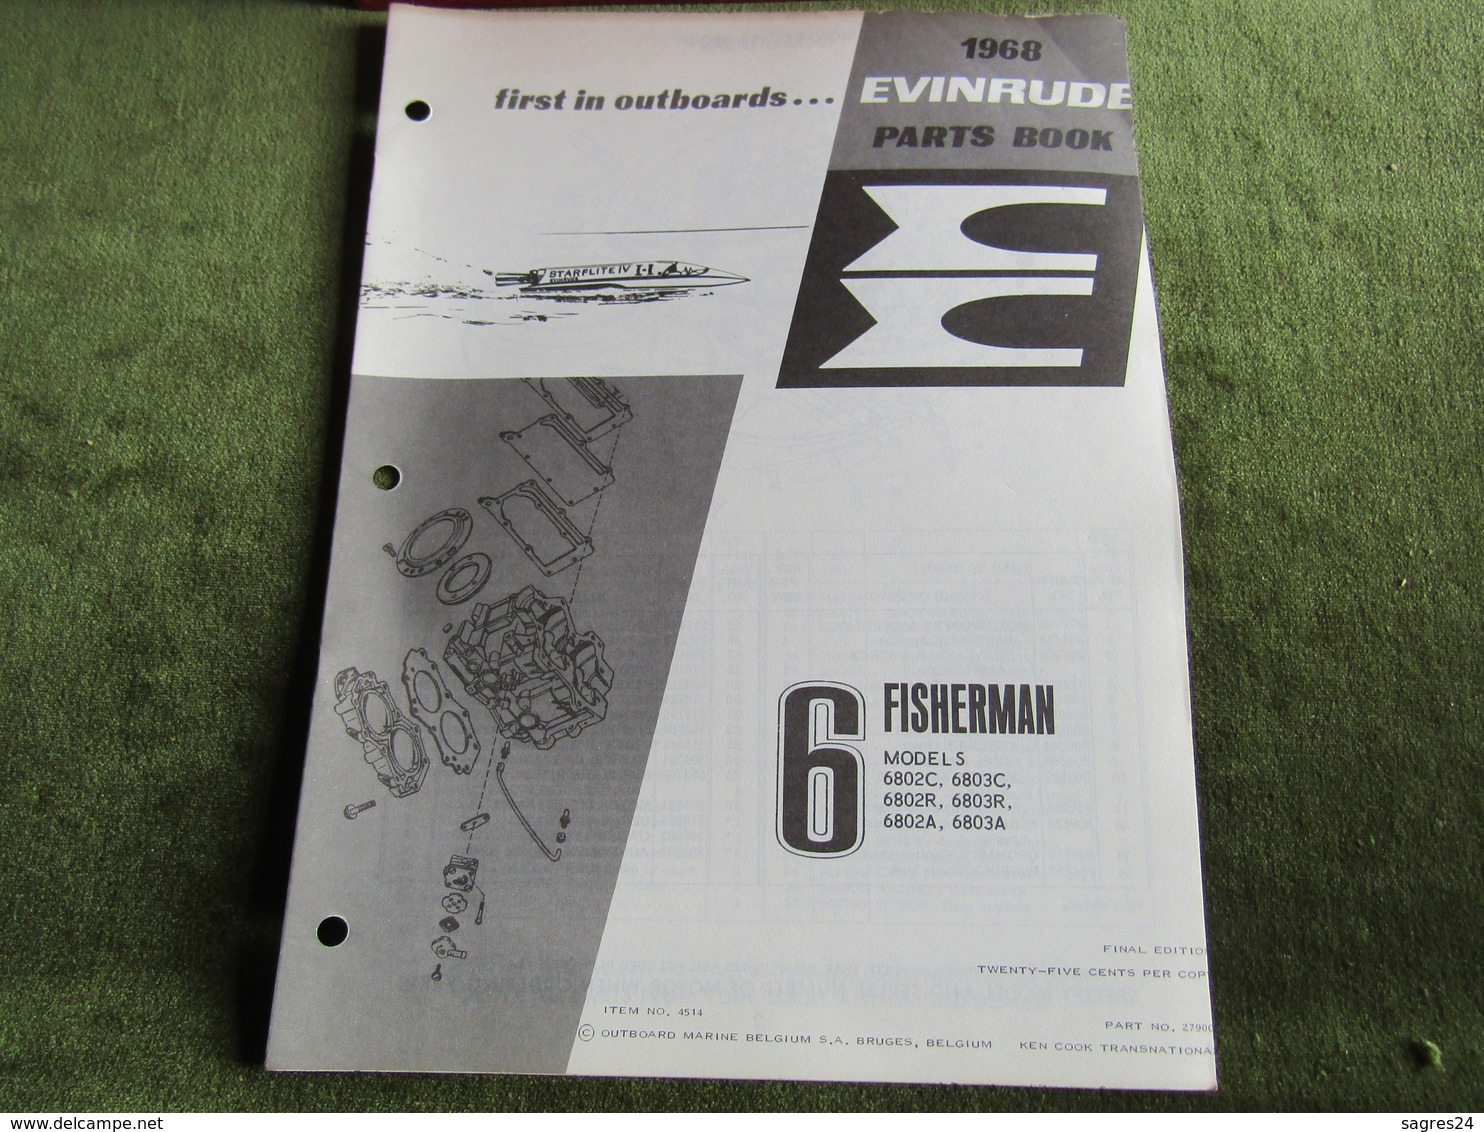 Evinrude Outboard 6 Fisherman Parts Book 1968 - Boats